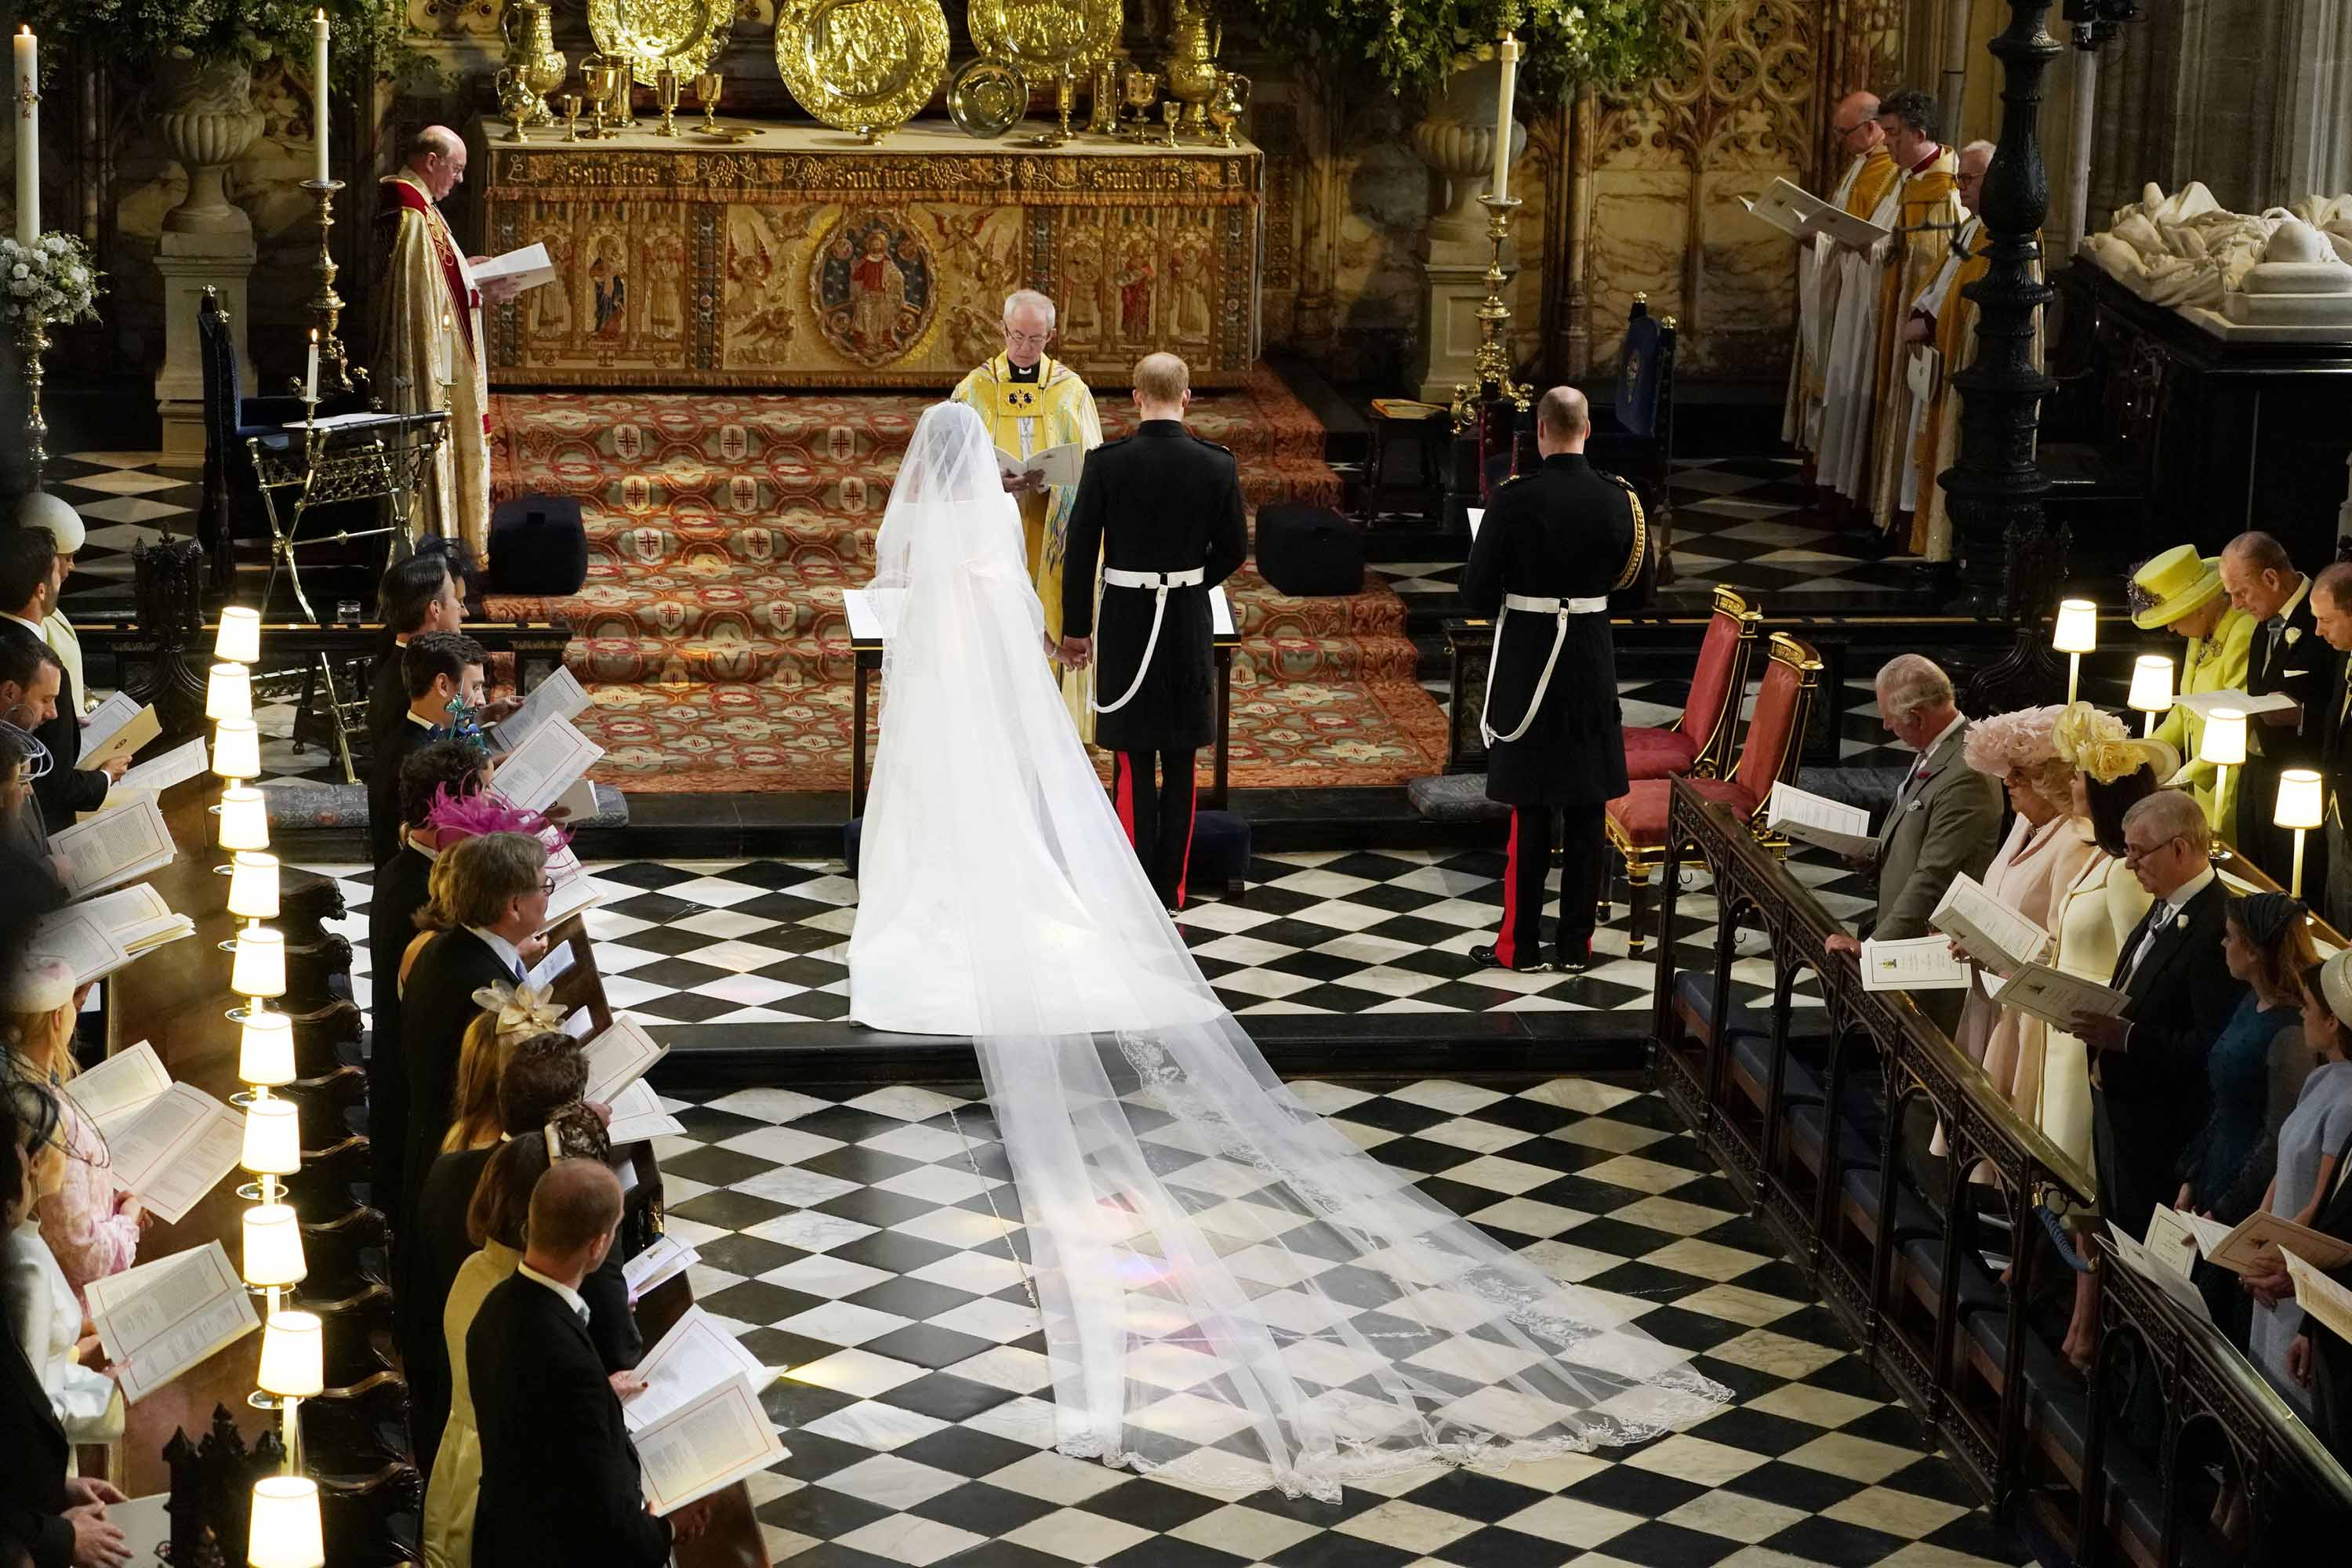 Prince Harry and Meghan Markle in St. George's Chapel at Windsor Castle during their wedding service, conducted by the Archbishop of Canterbury Justin Welby.